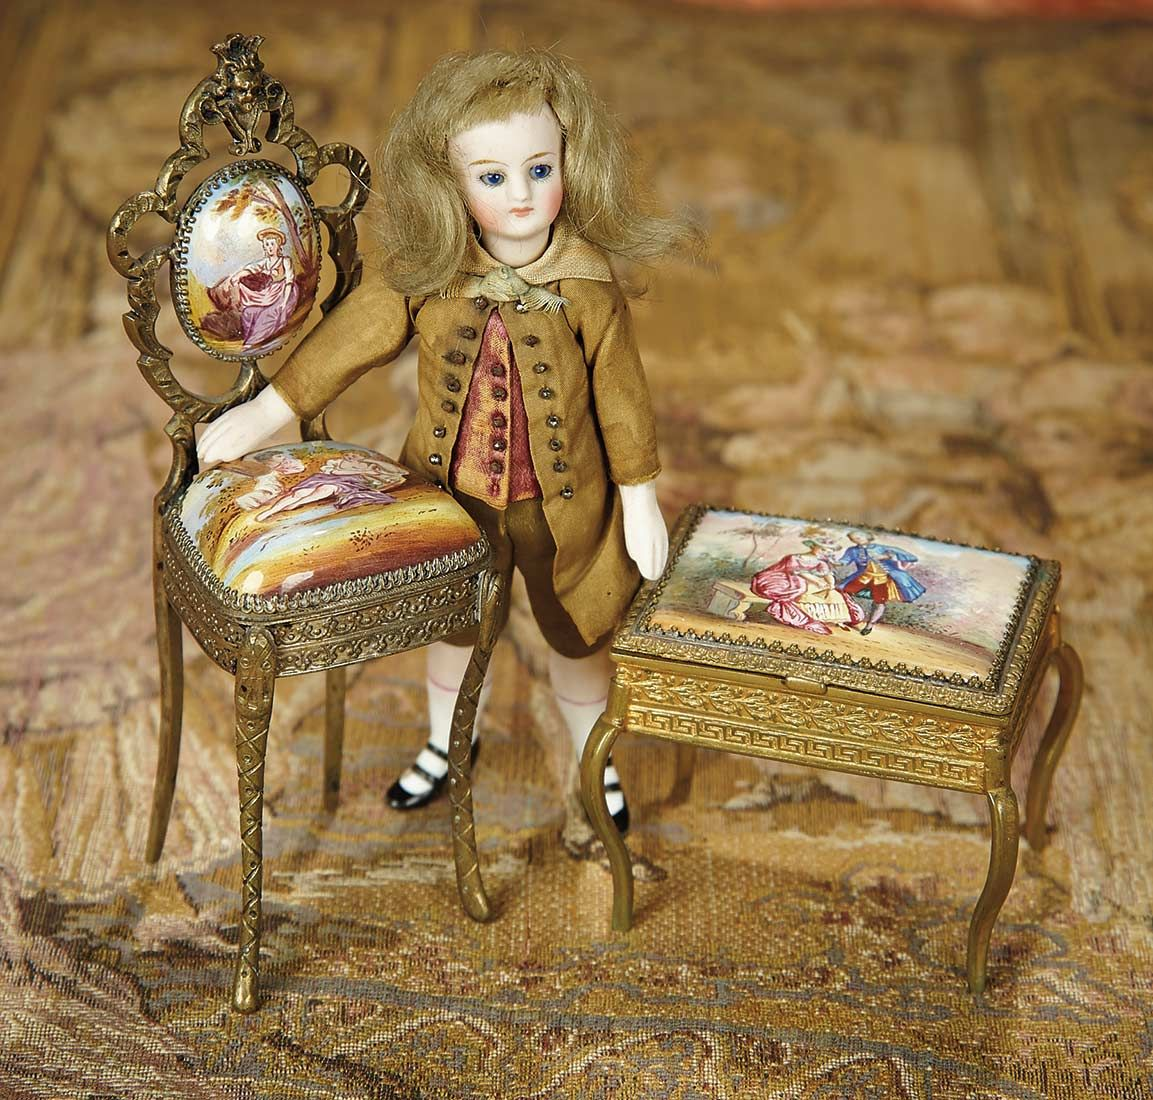 Bread and Roses - Auction - July 26, 2016: Lot #6 French All-Bisque Mignonette with Viennese Enamel Miniature Furniture